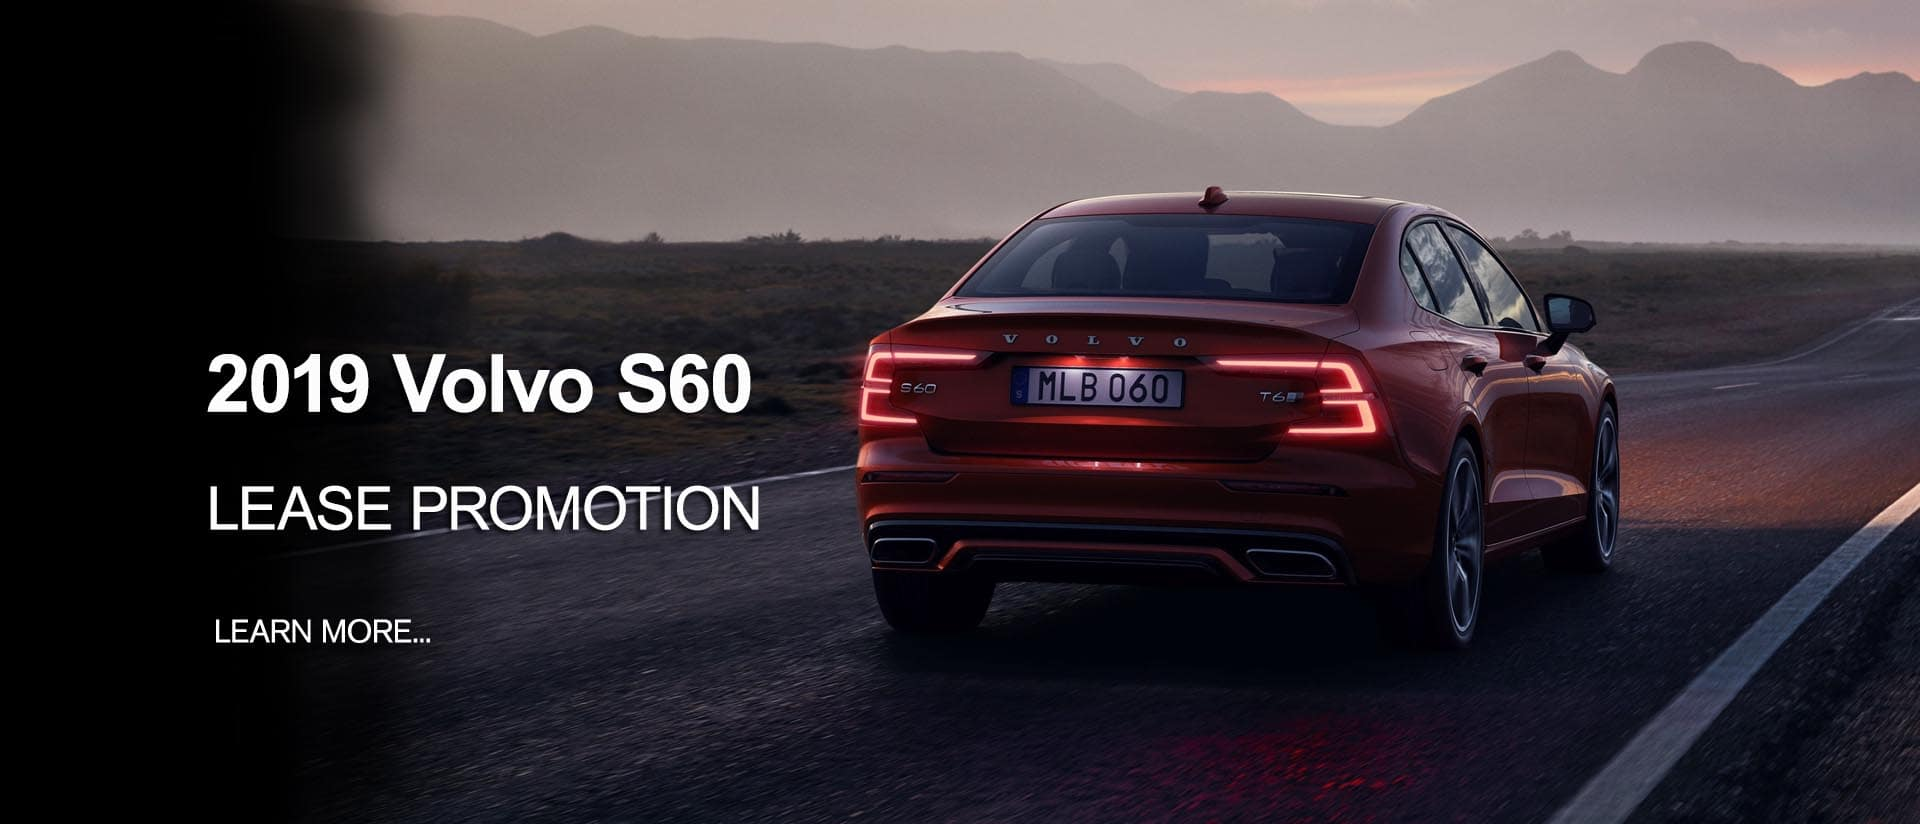 S60-promotion